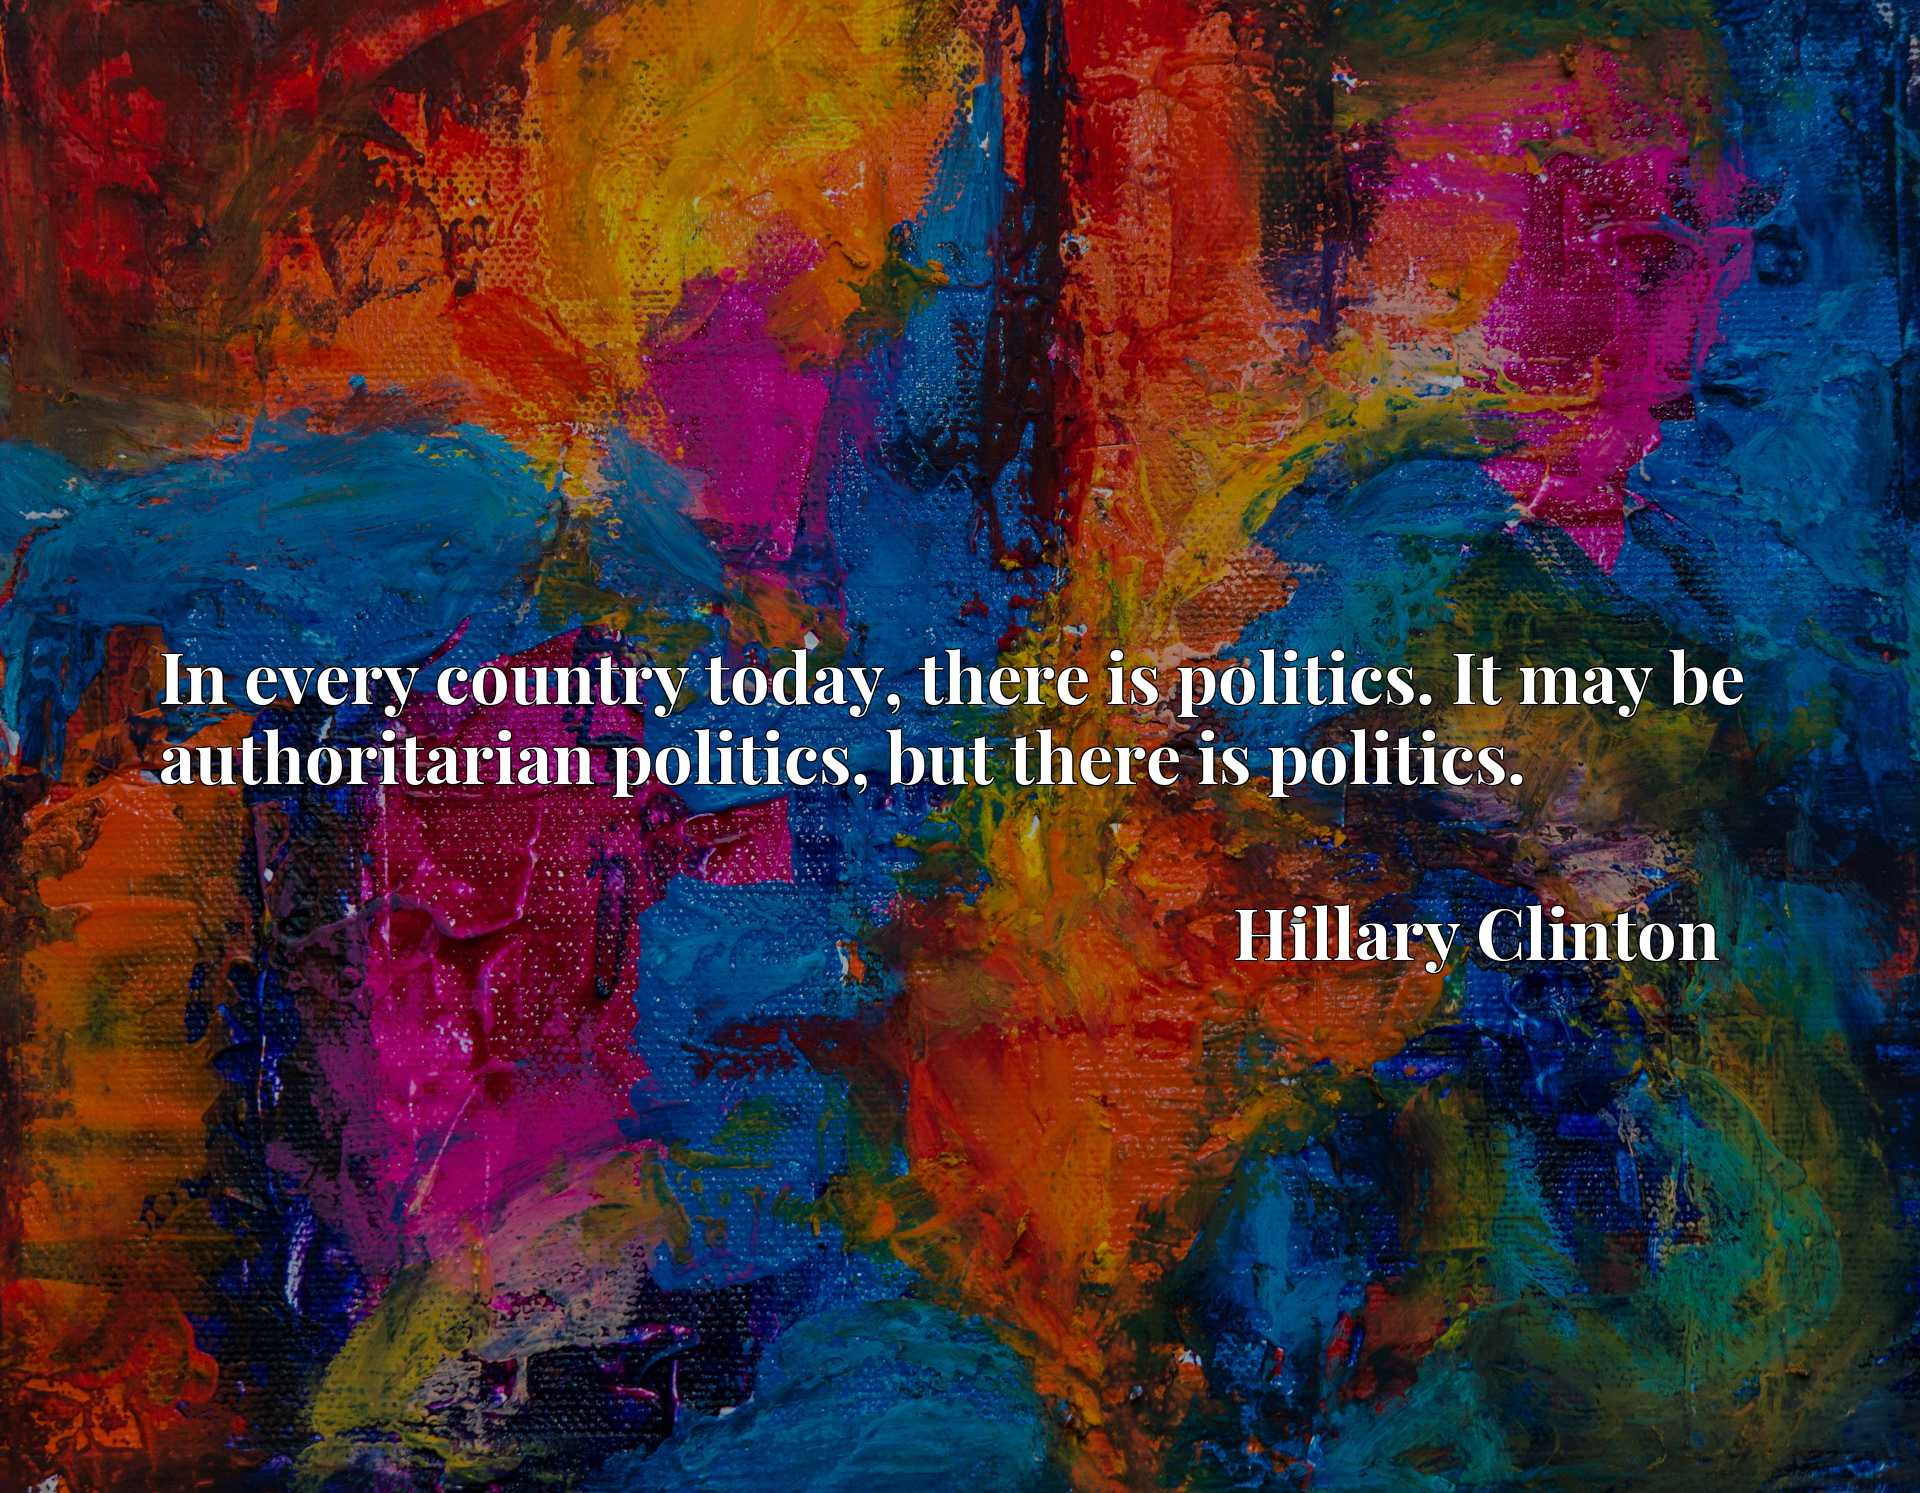 In every country today, there is politics. It may be authoritarian politics, but there is politics.